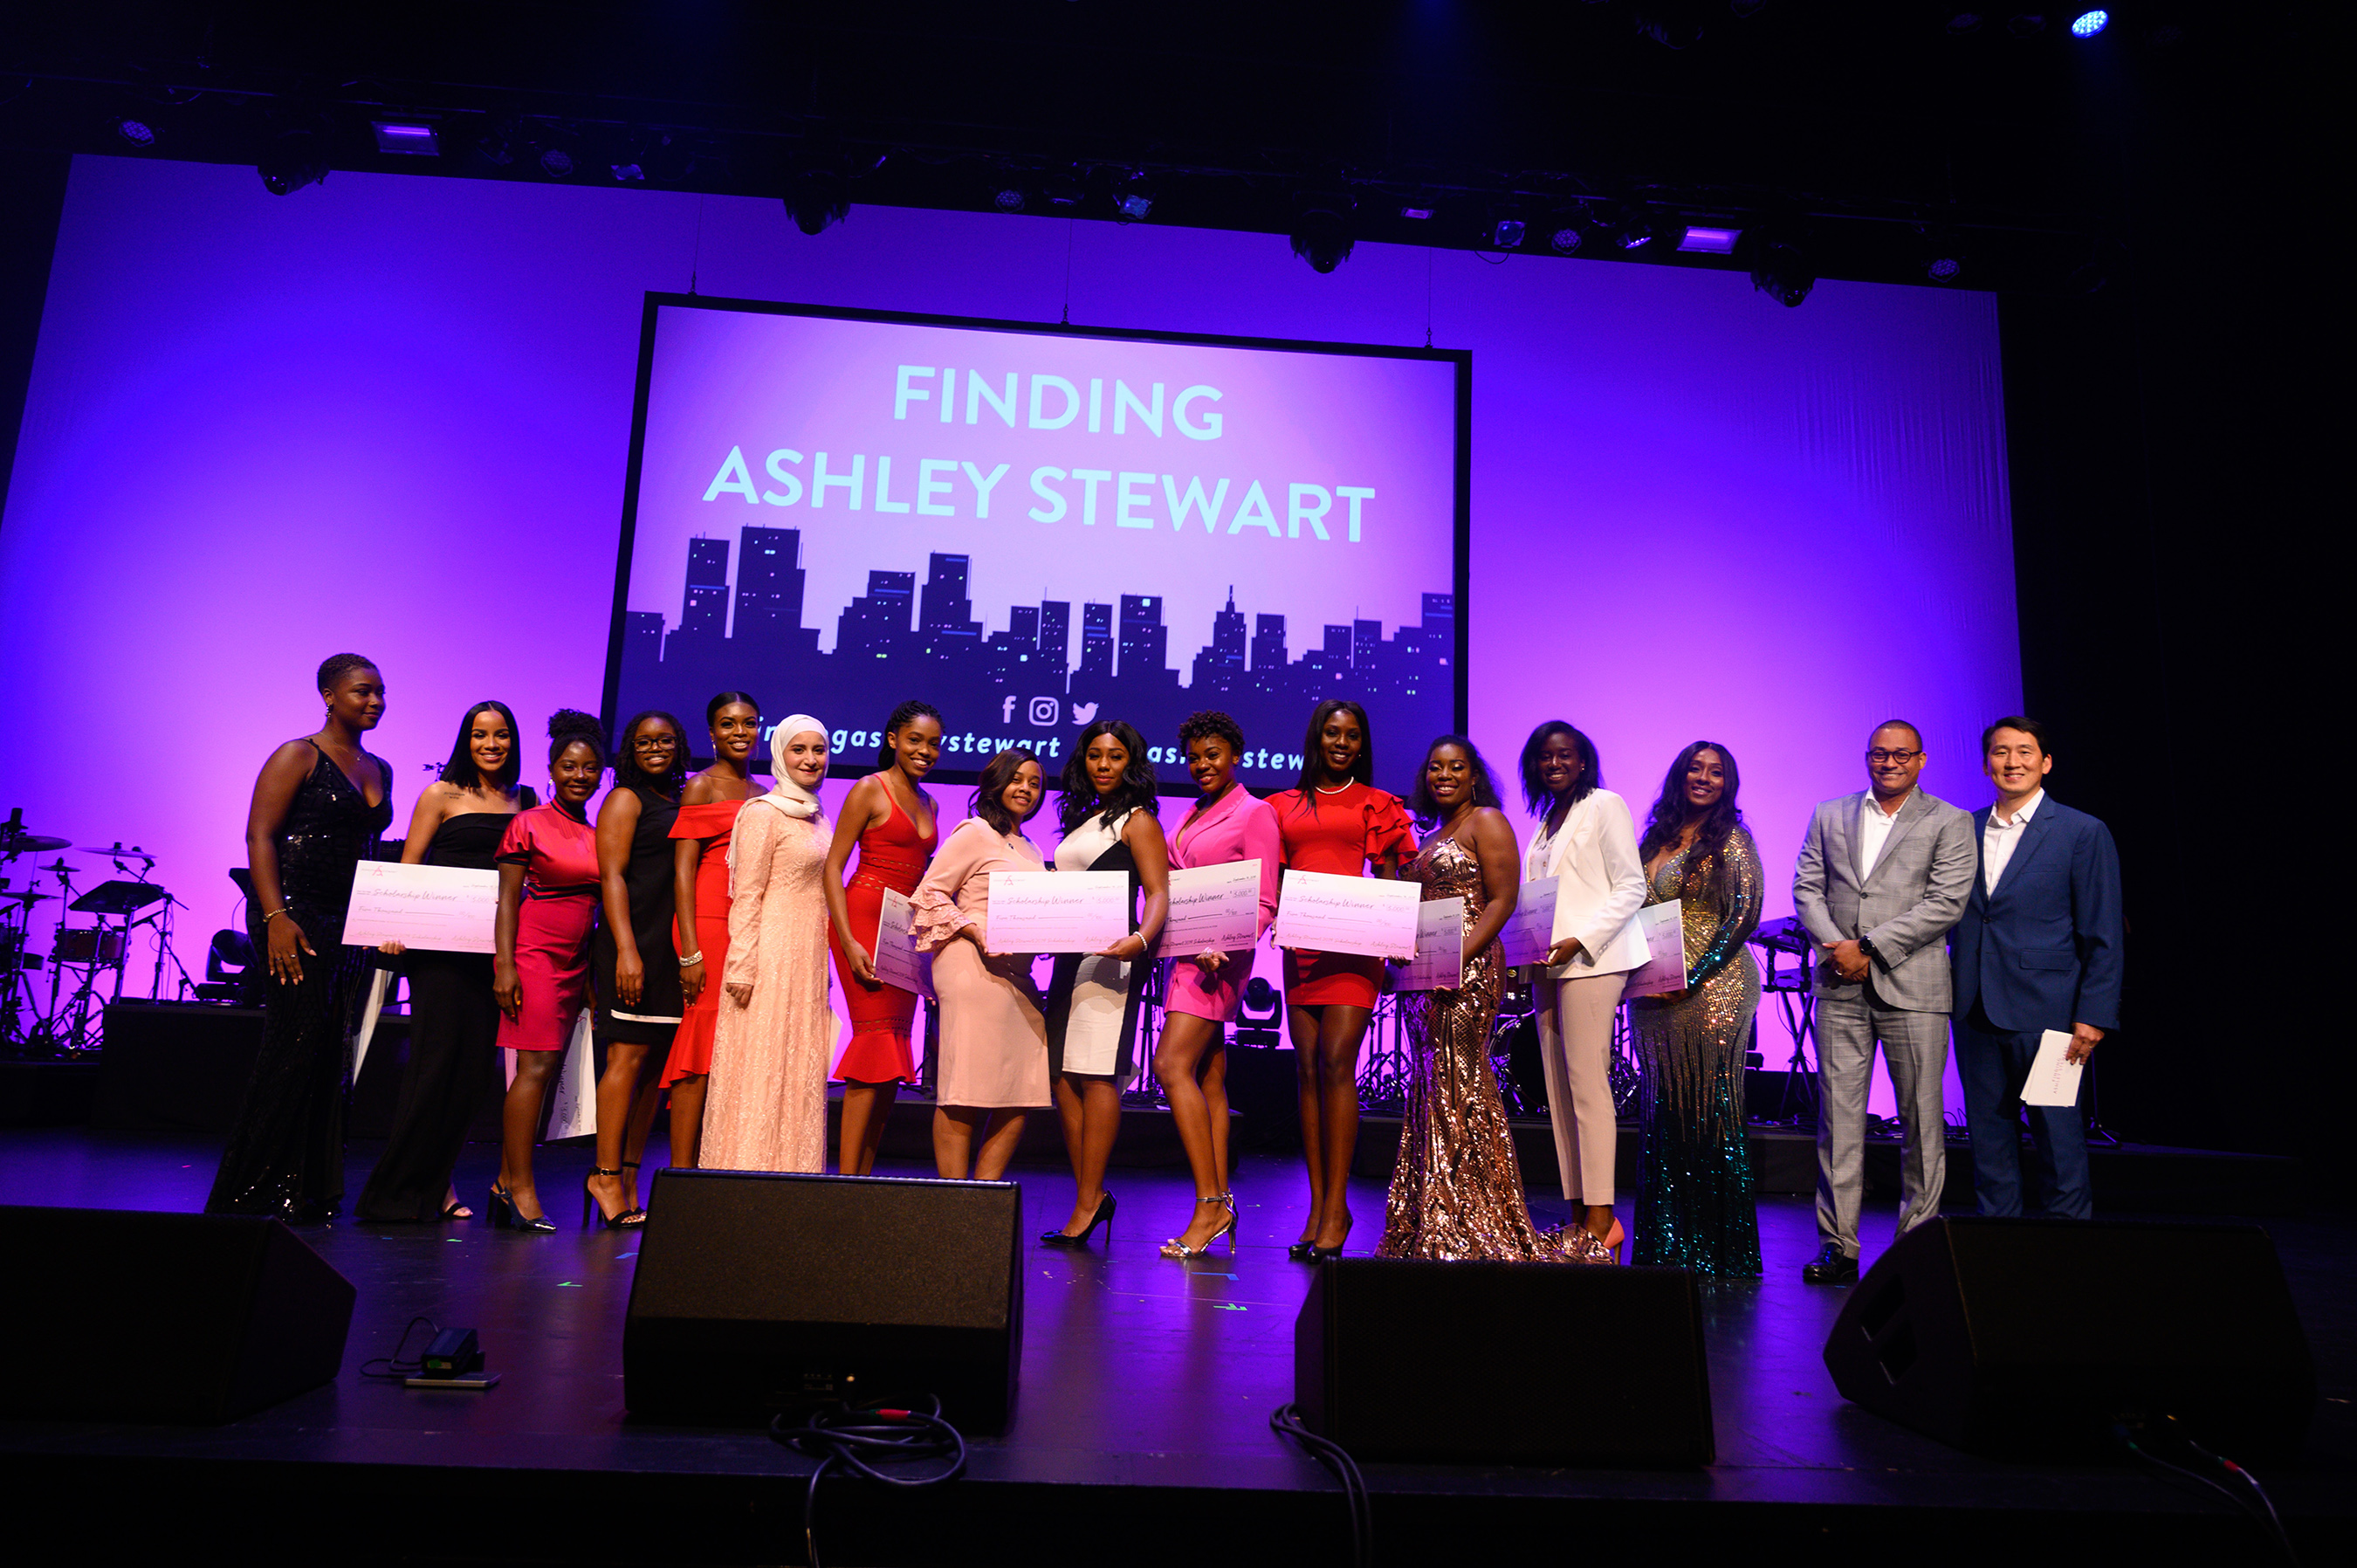 2019 Finding Ashley Stewart Scholarship winners with Sekou Kaalund, head of JPMorgan Chase & Co. Advancing Black Pathways and James Rhee, Chairman and CEO of Ashley Stewart